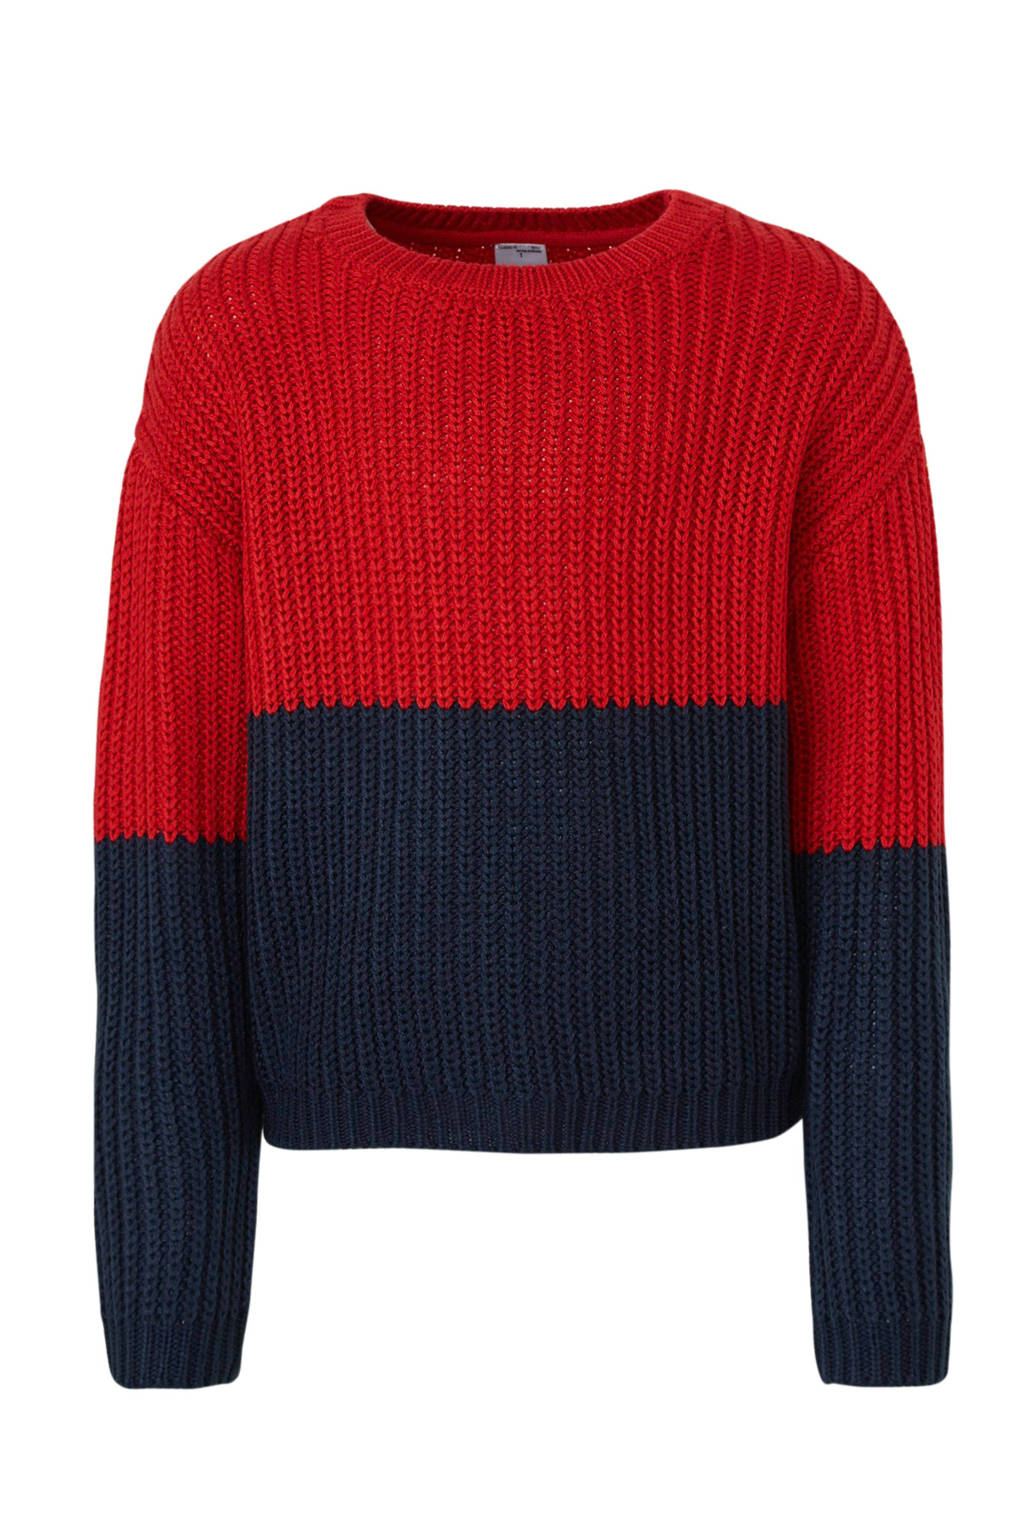 C&A Here & There trui rood/donkerblauw, Rood/donkerblauw